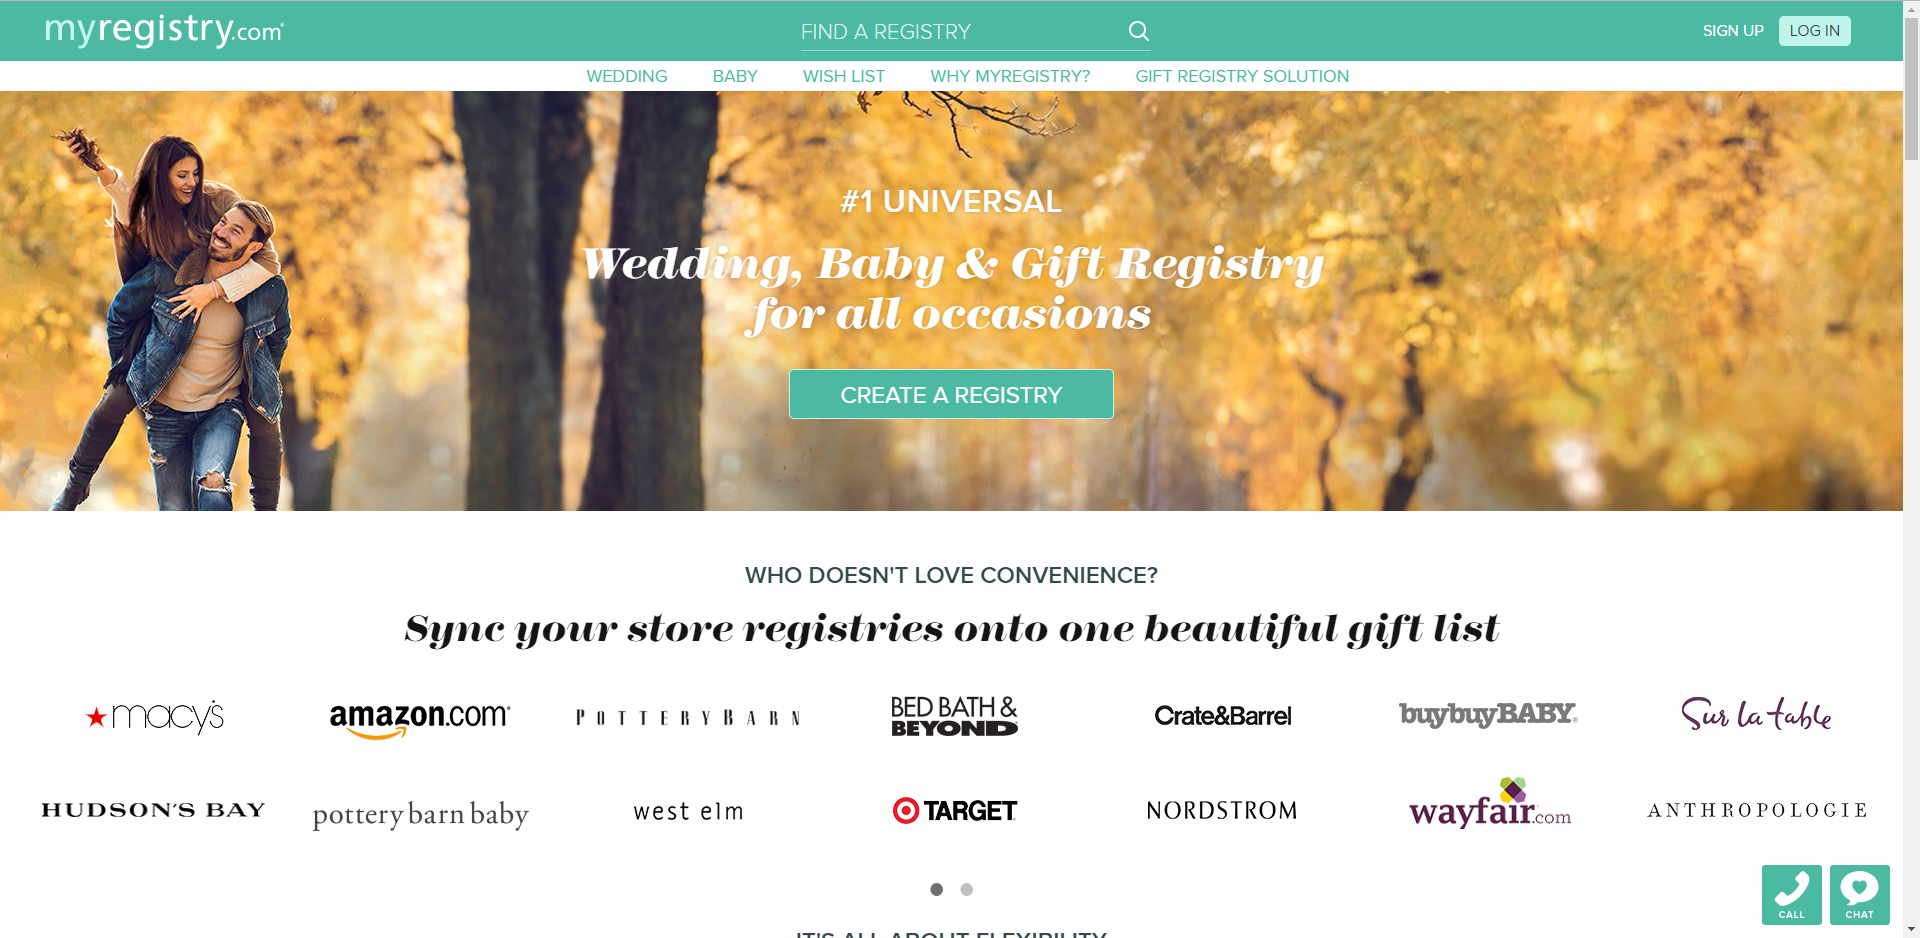 never get another unwanted gift myregistry.com